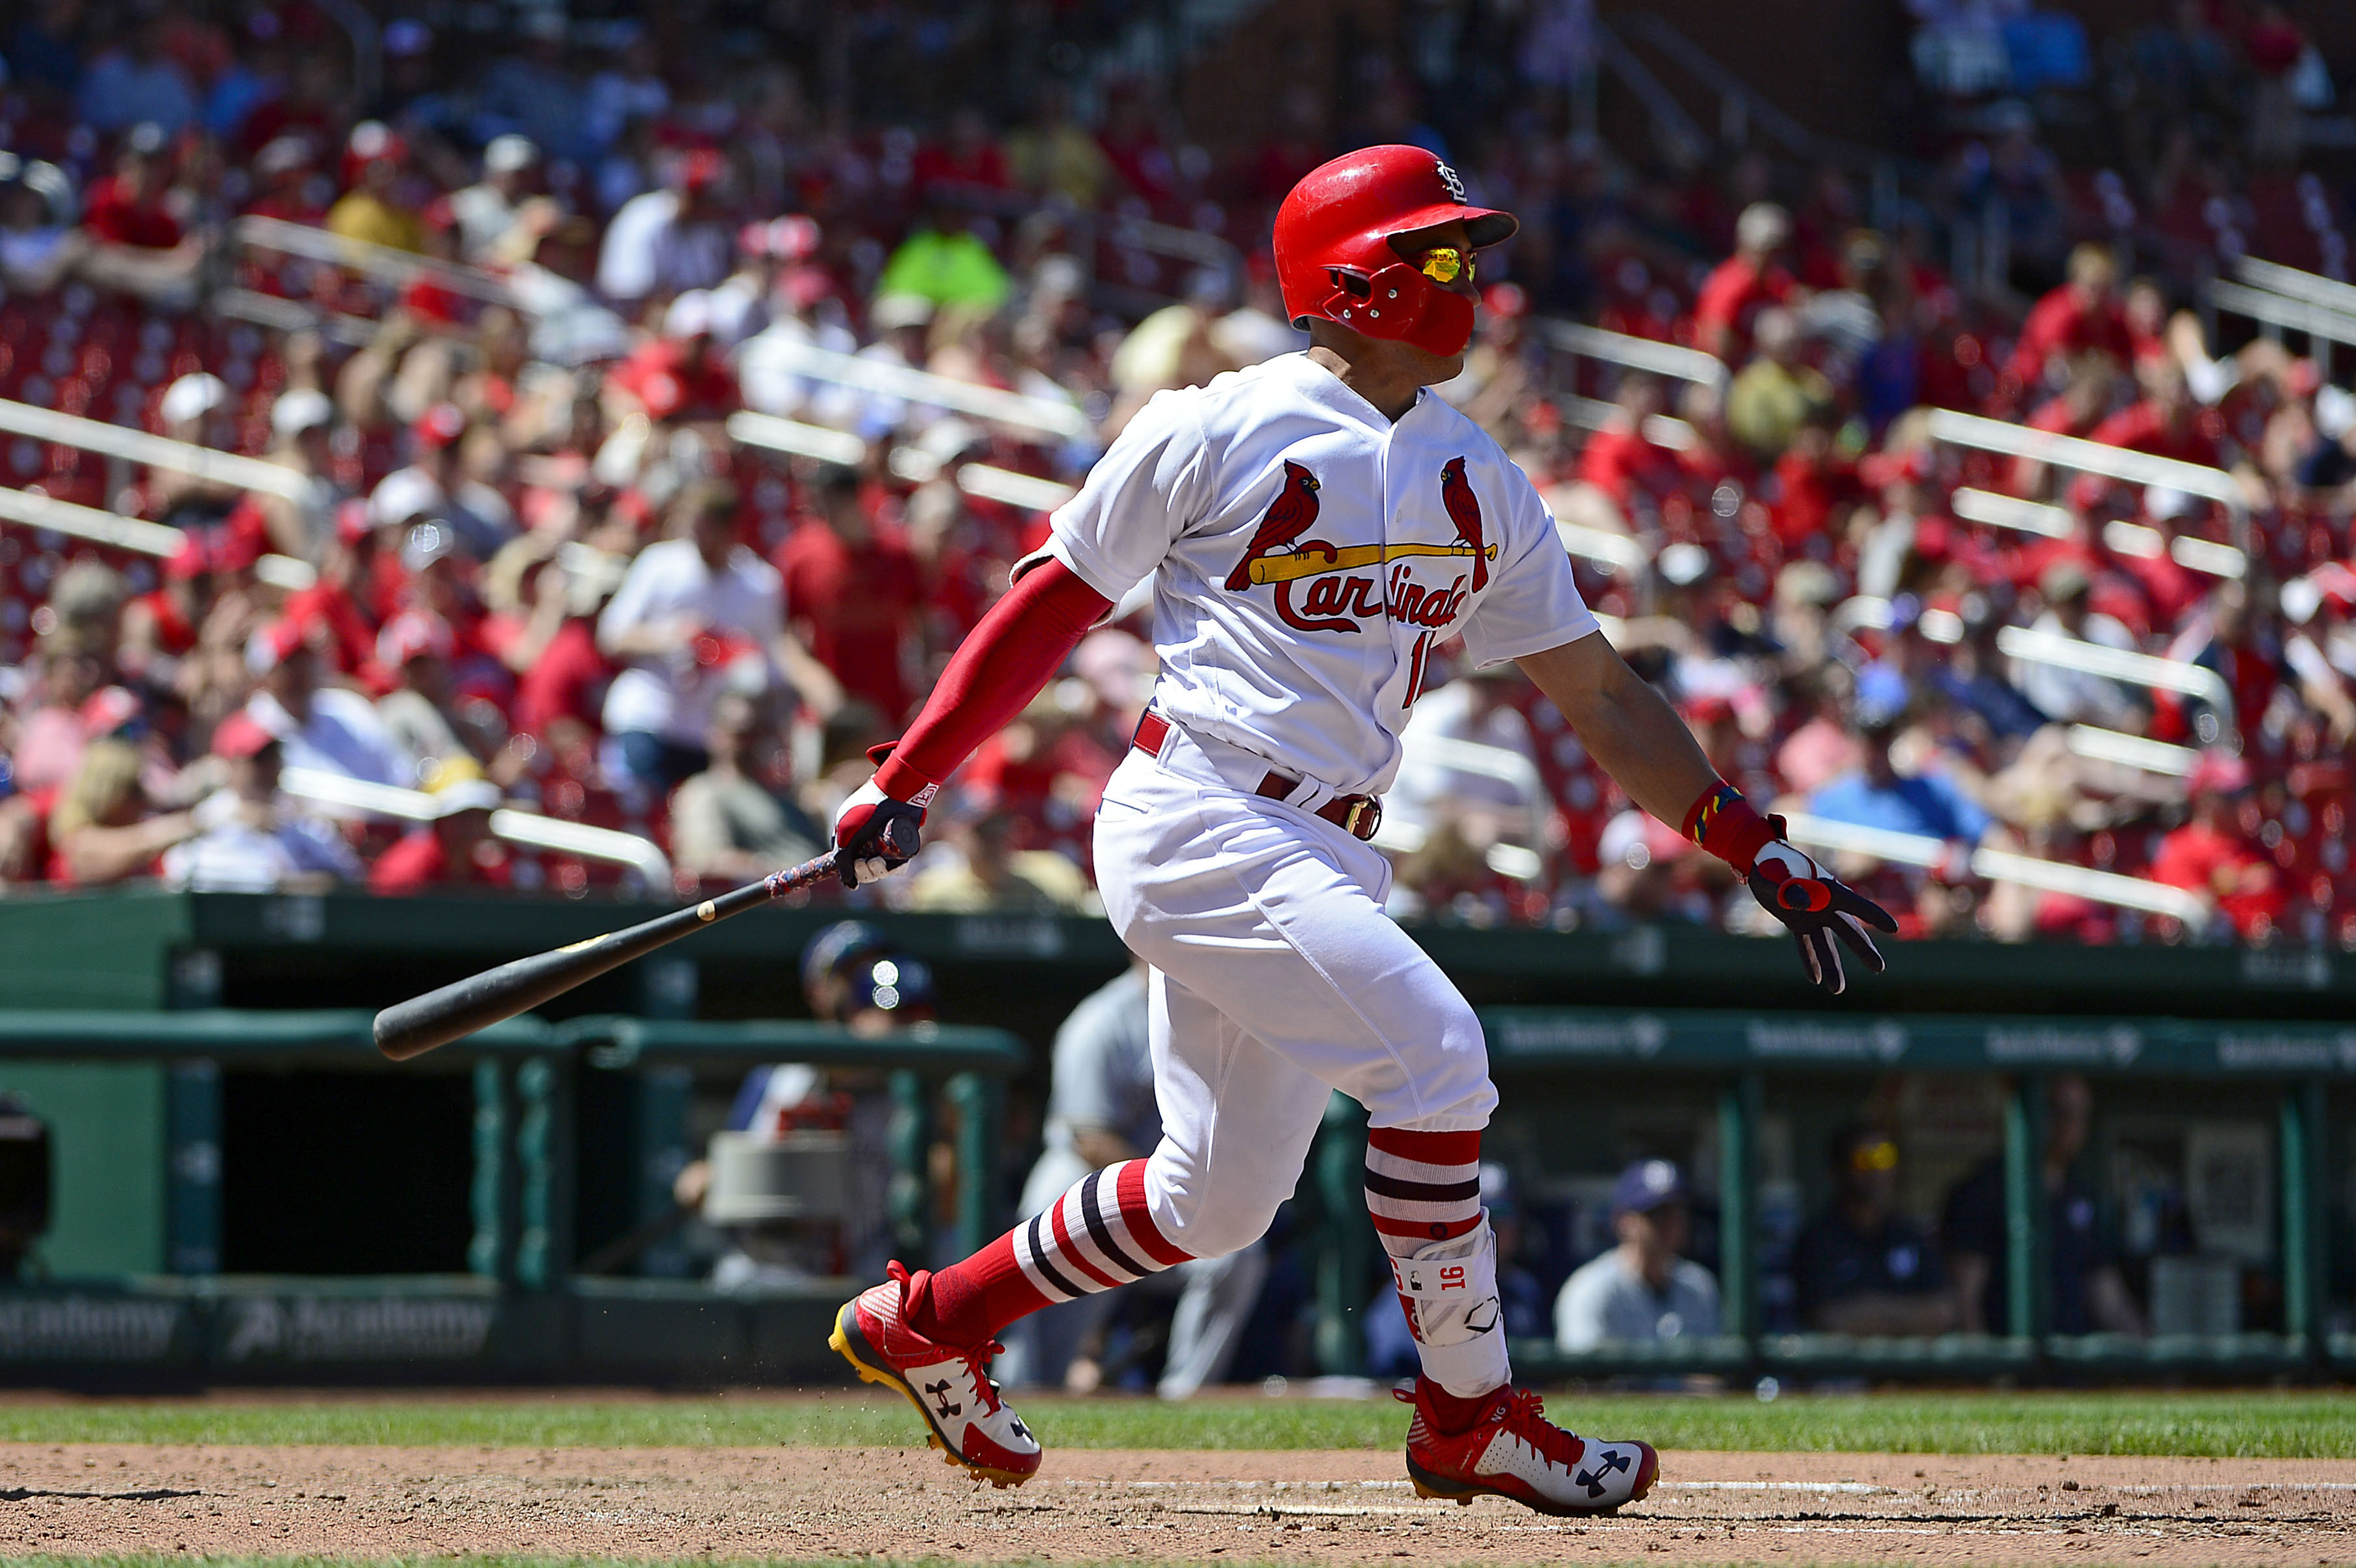 Pitchers Game >> St. Louis Cardinals: Two of our writers debate Kolten Wong